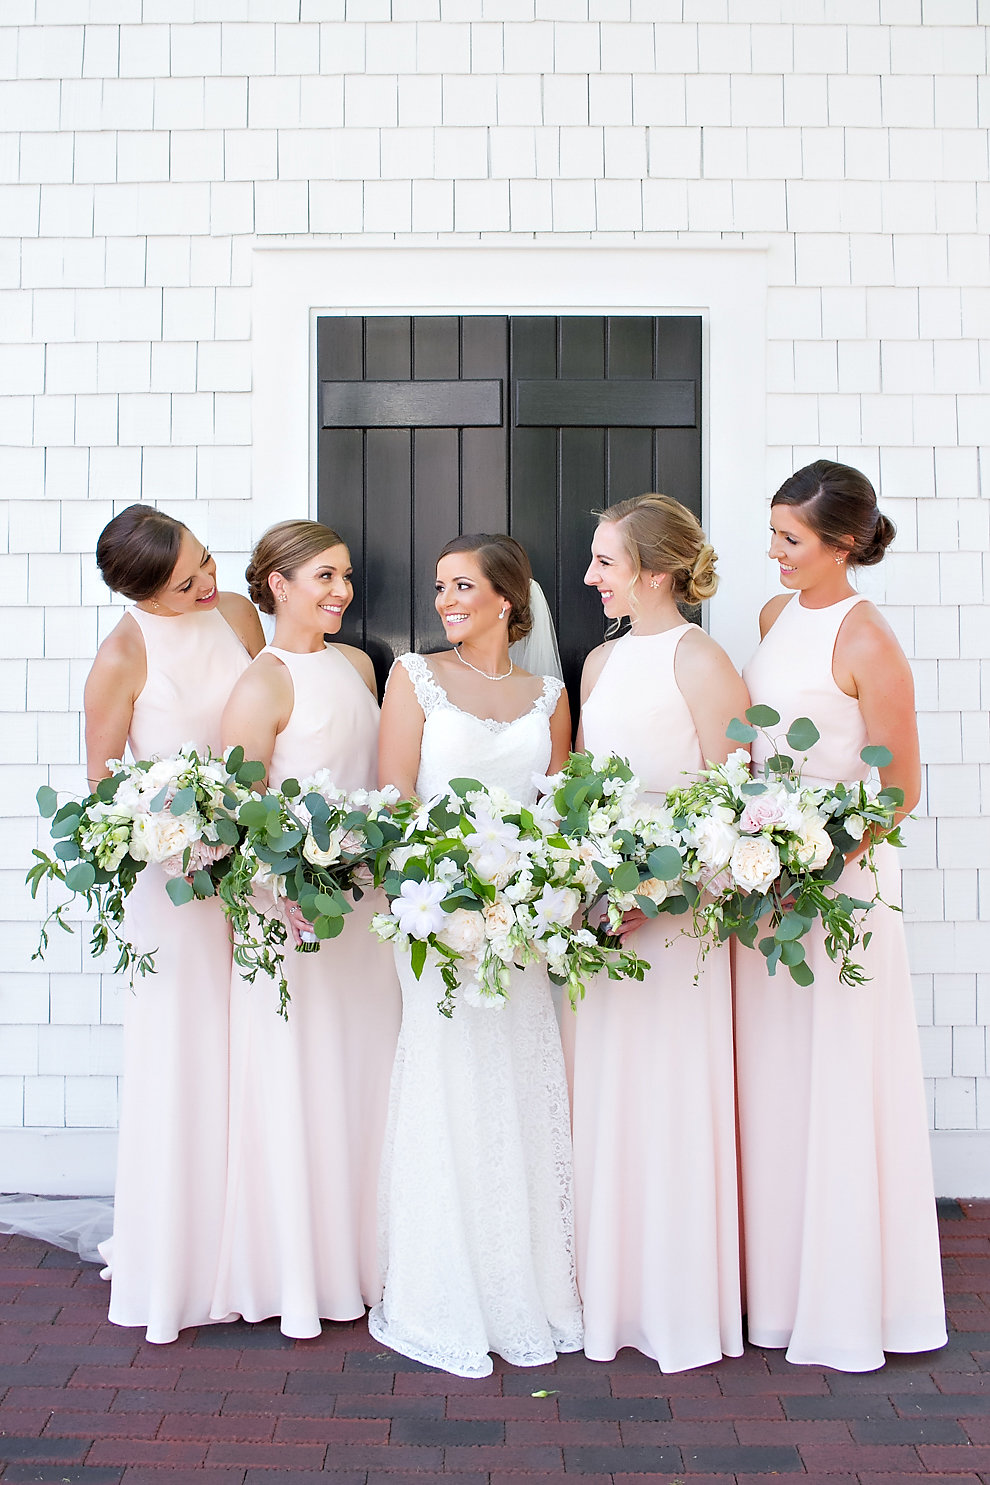 Charlotte North Carolina Wedding, Trump National Golf Course Wedding, Lakeside wedding, Blush Ivory and Greenery Wedding Design, The Graceful Host, Blush Bridesmaid Dresses, BHLDN Bridesmaid, Bridesmaid Bouquet, Greenery Bouquet, Flower Girl Attire. Blush Wedding Inspiration, Spring Wedding